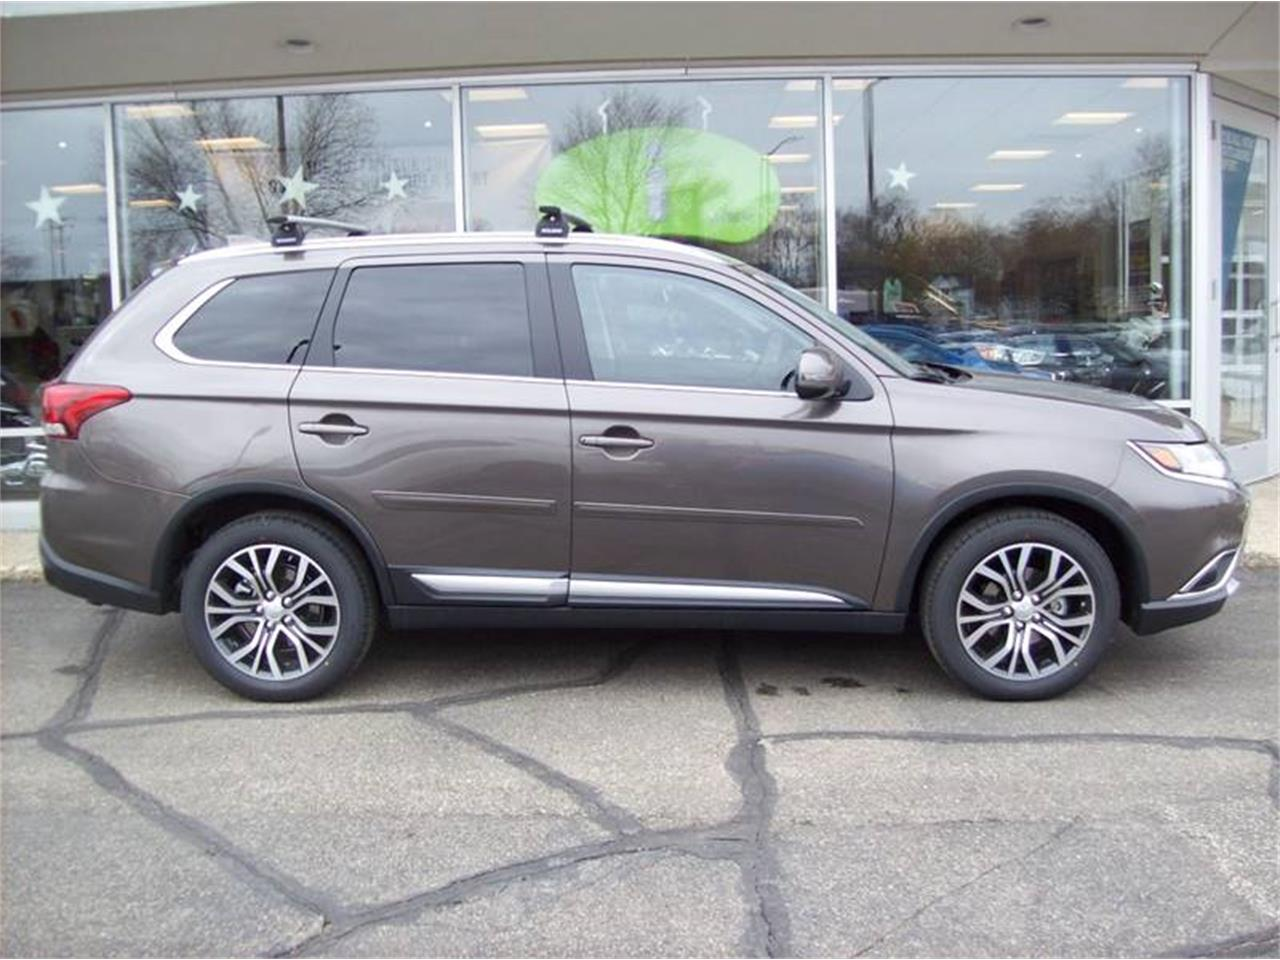 Large Picture of 2017 Mitsubishi Outlander located in Holland Michigan - $25,249.00 Offered by Verhage Mitsubishi - LG8N